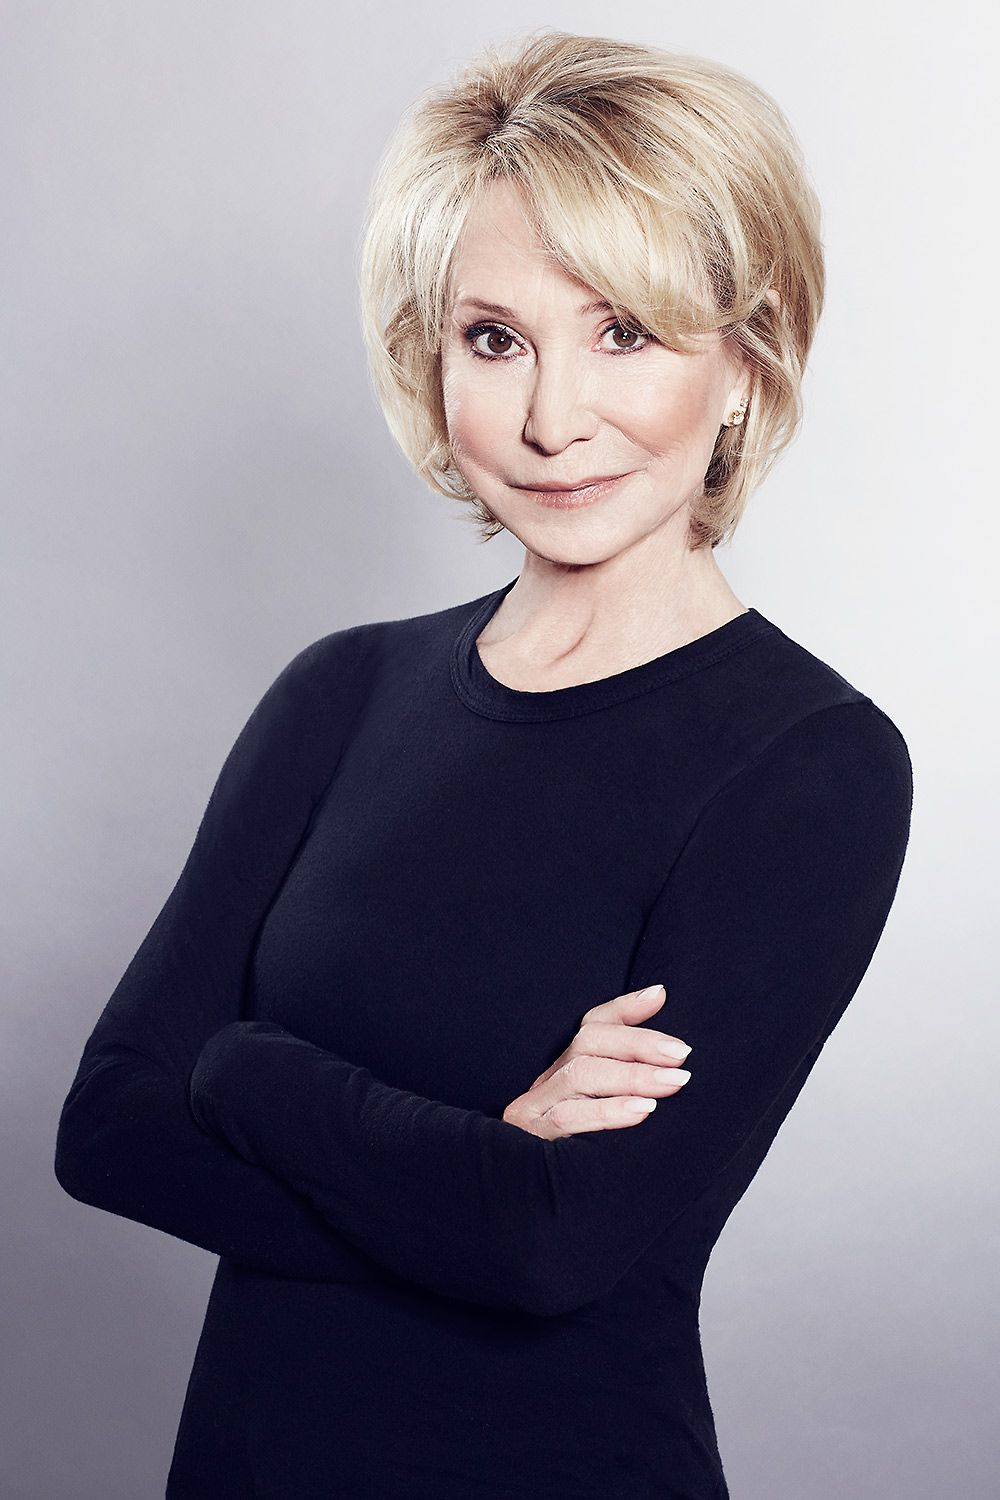 Michael Learned pictures